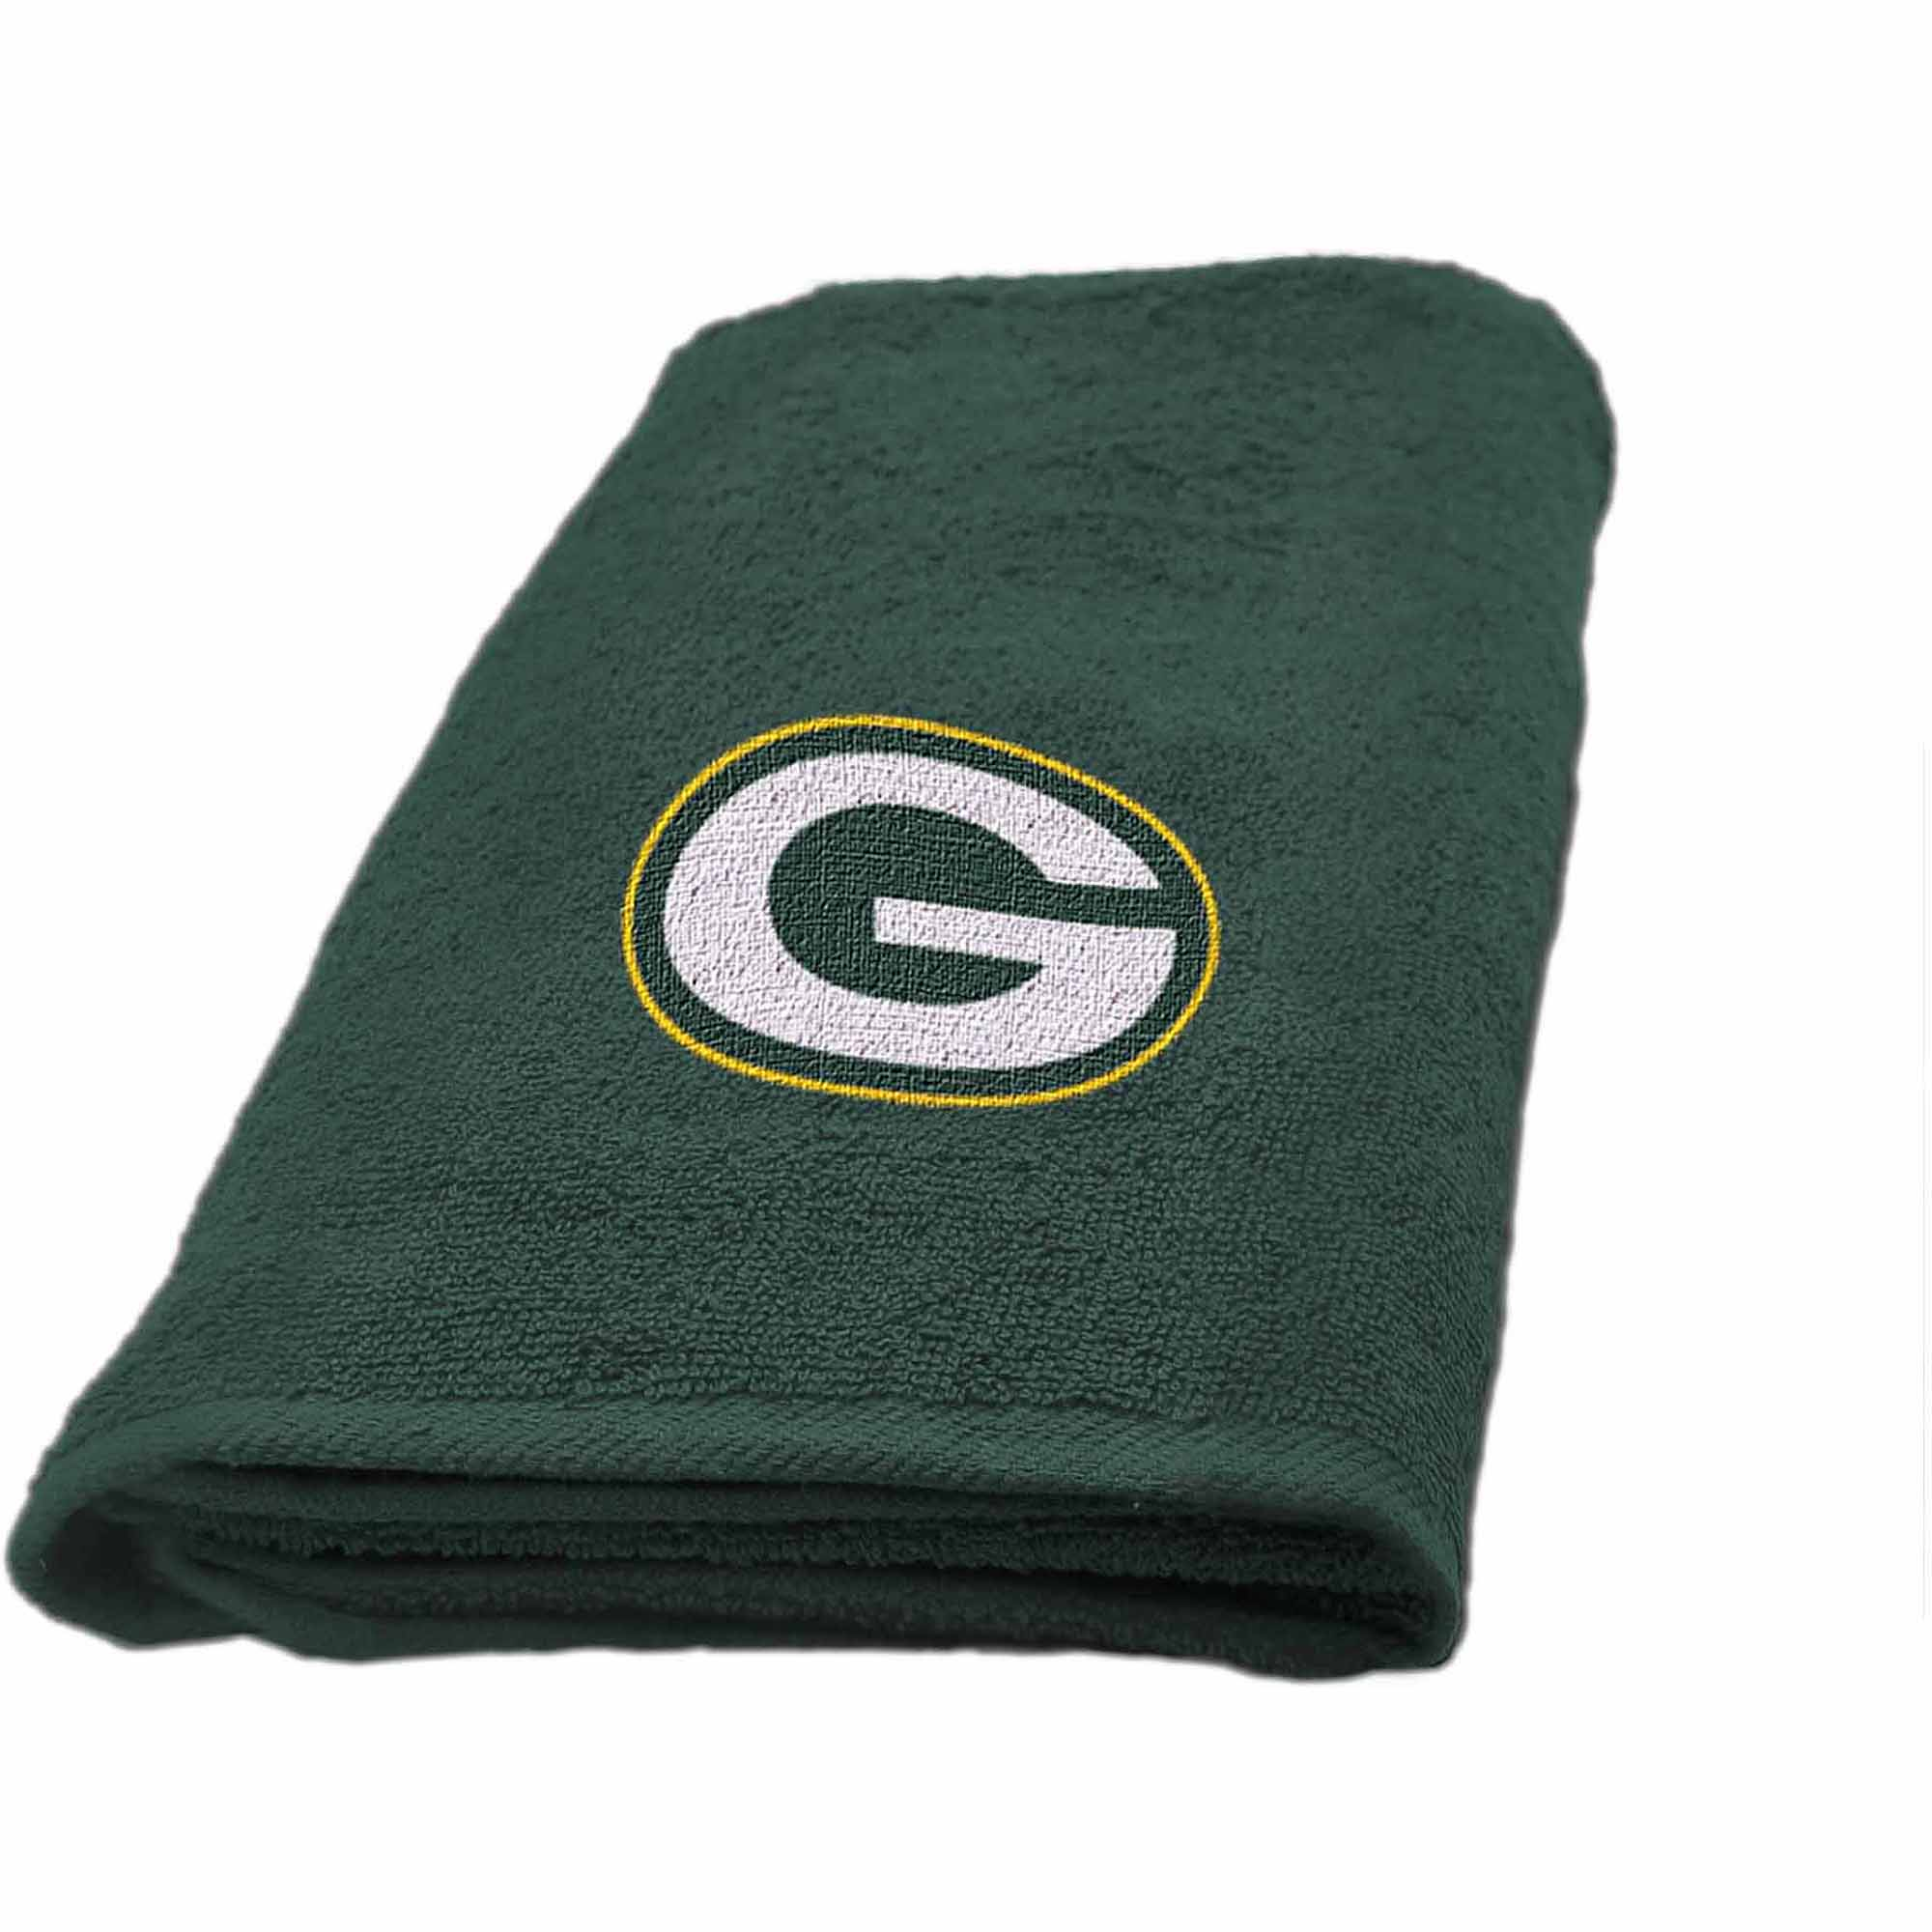 NFL Green Bay Packers Hand Towel